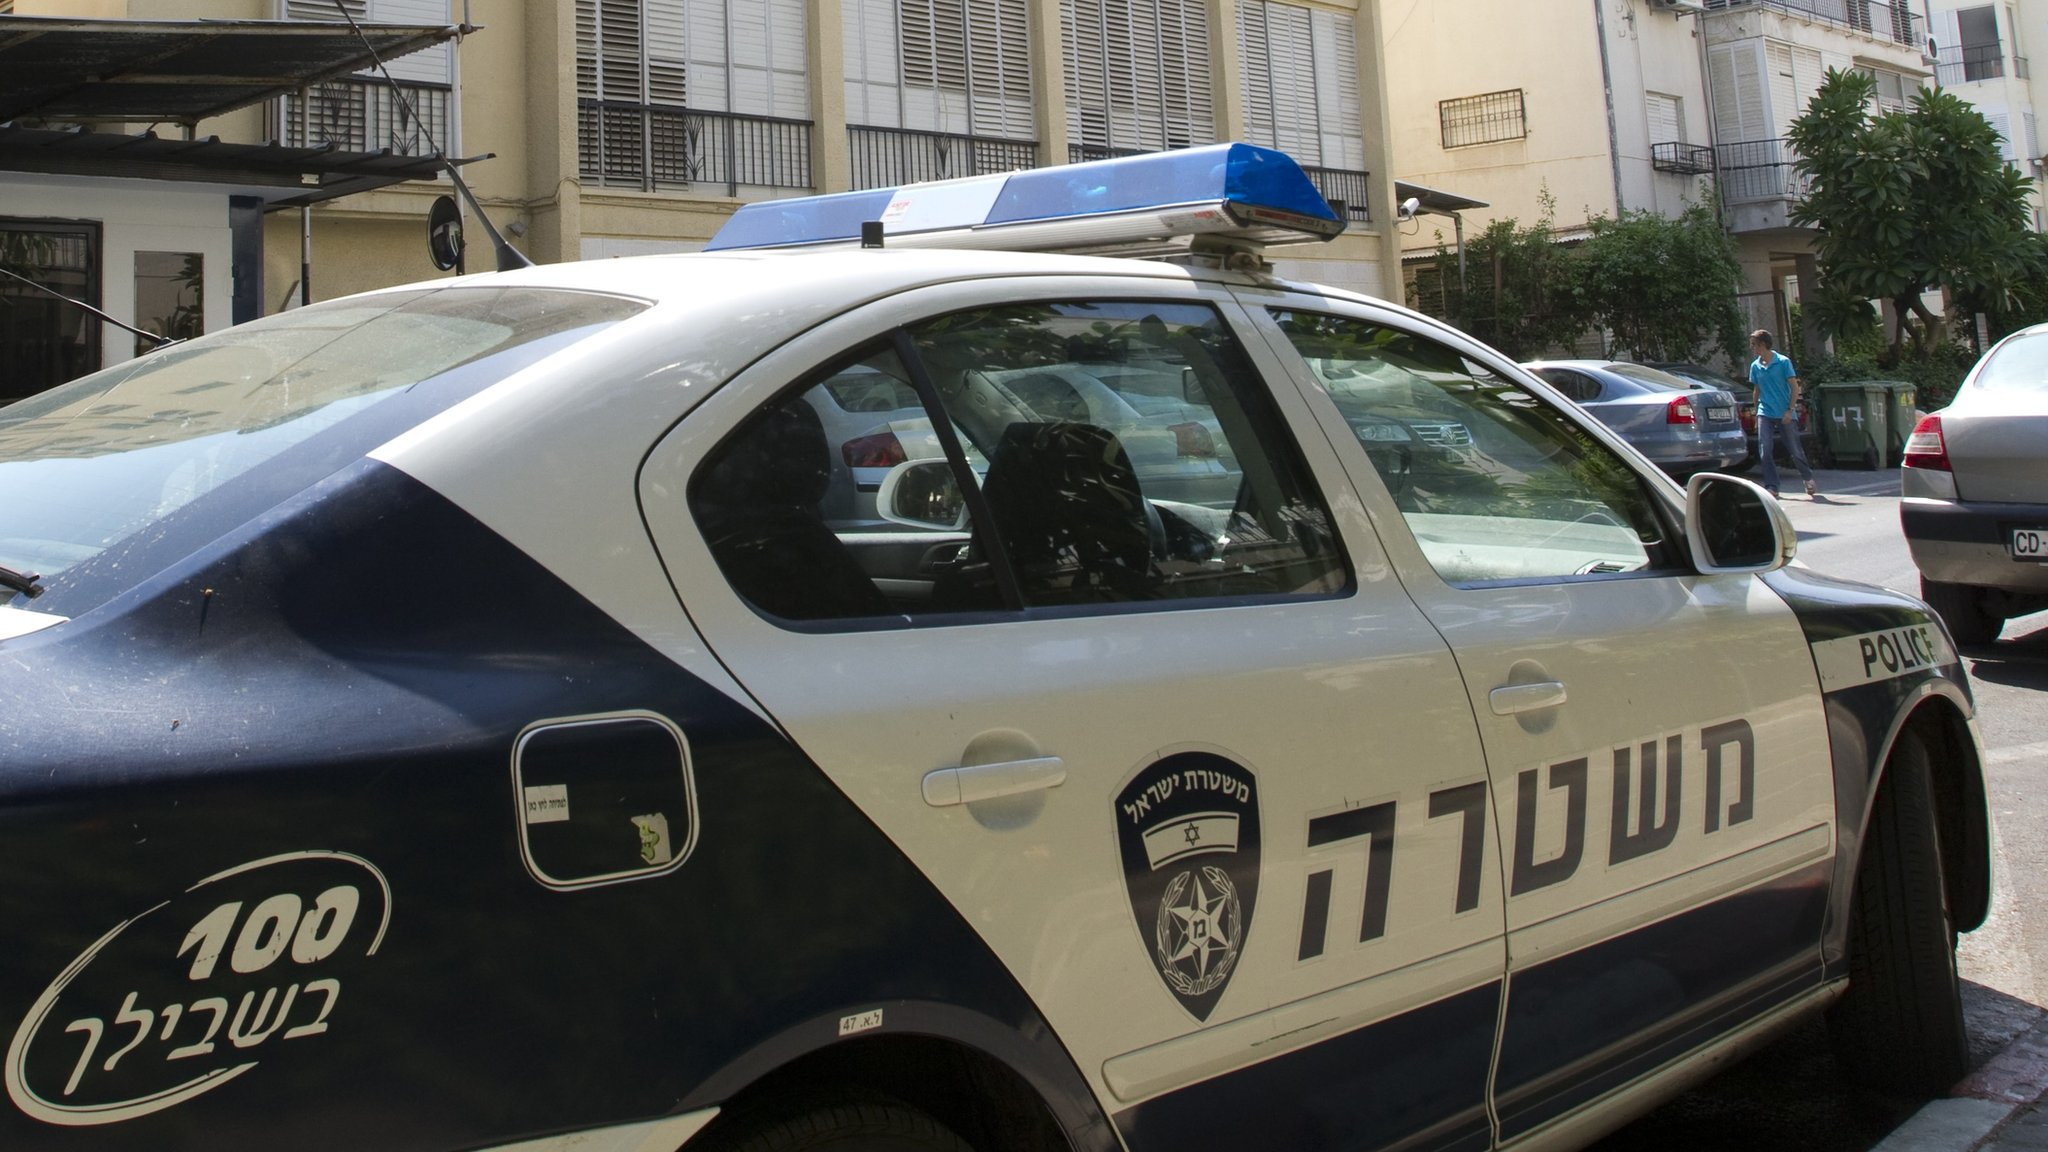 Israel police investigate 'sex-for-judgeships' allegations